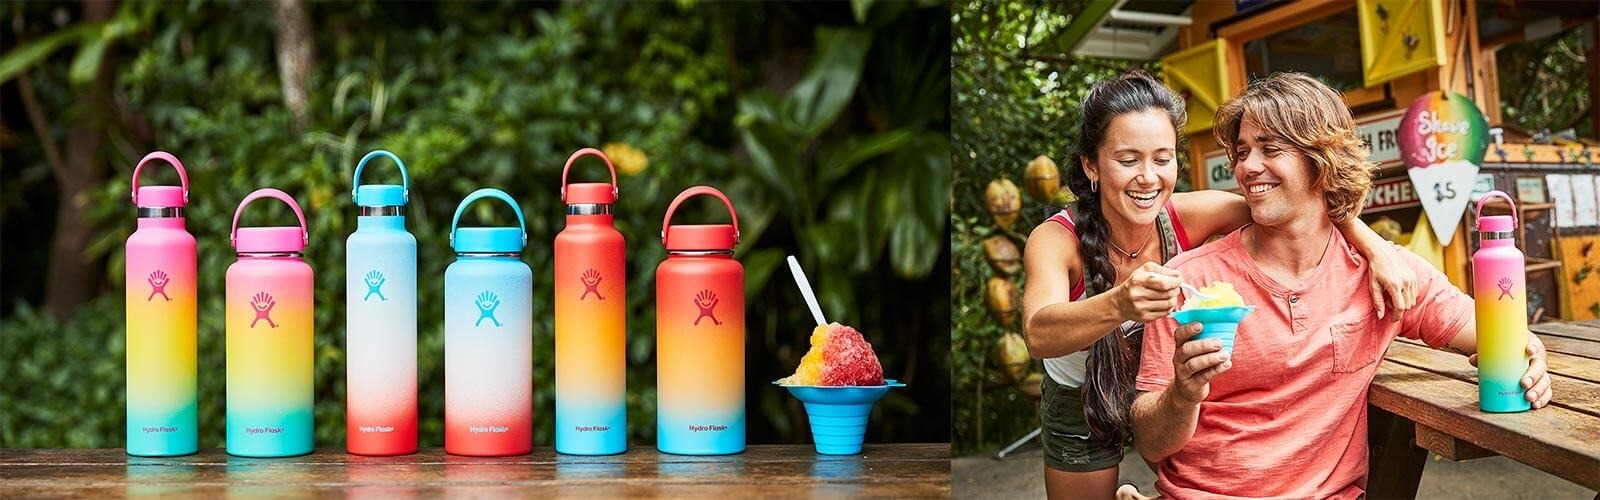 Our colorful ombré Shave Ice Collection celebrates the sweet, Hawaiian treat. Get your favorite while supplies last!